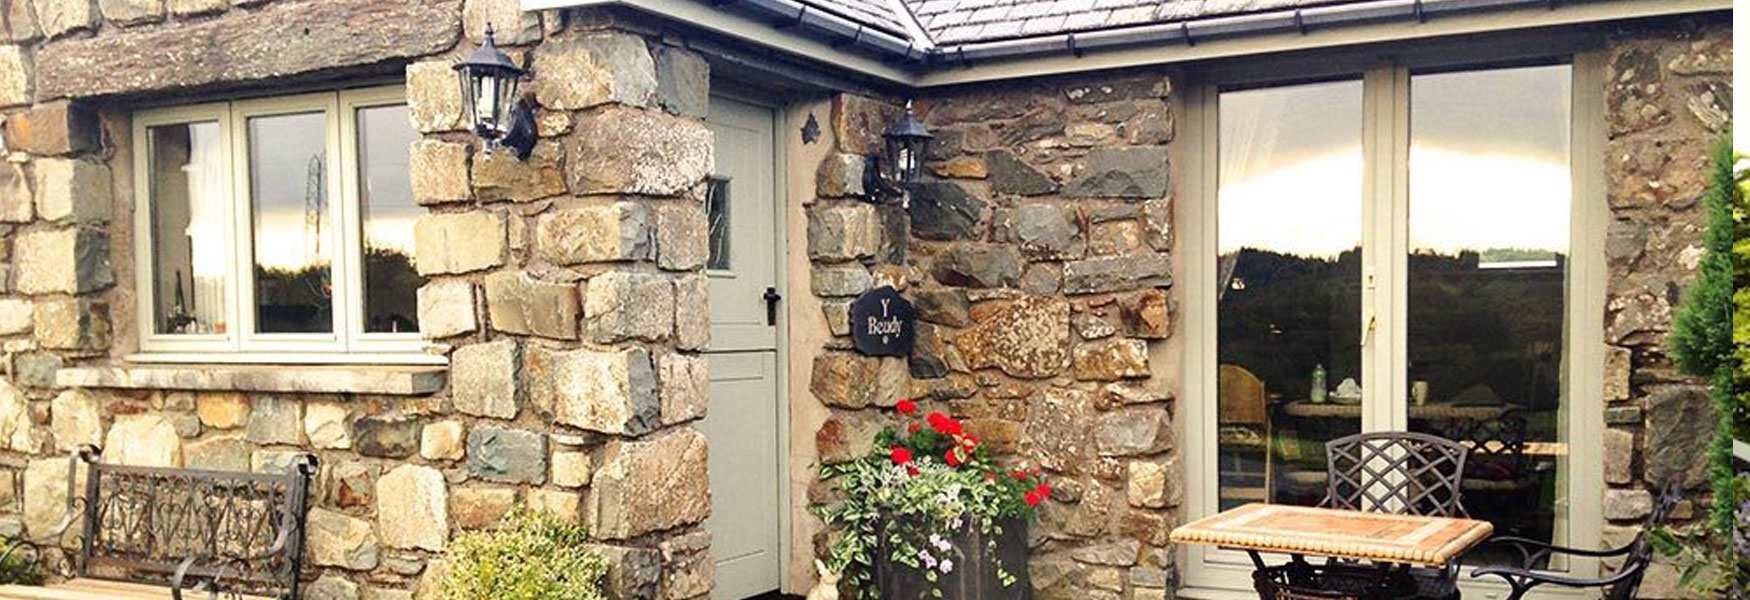 Pet and Dog Friendly Hotels North Wales